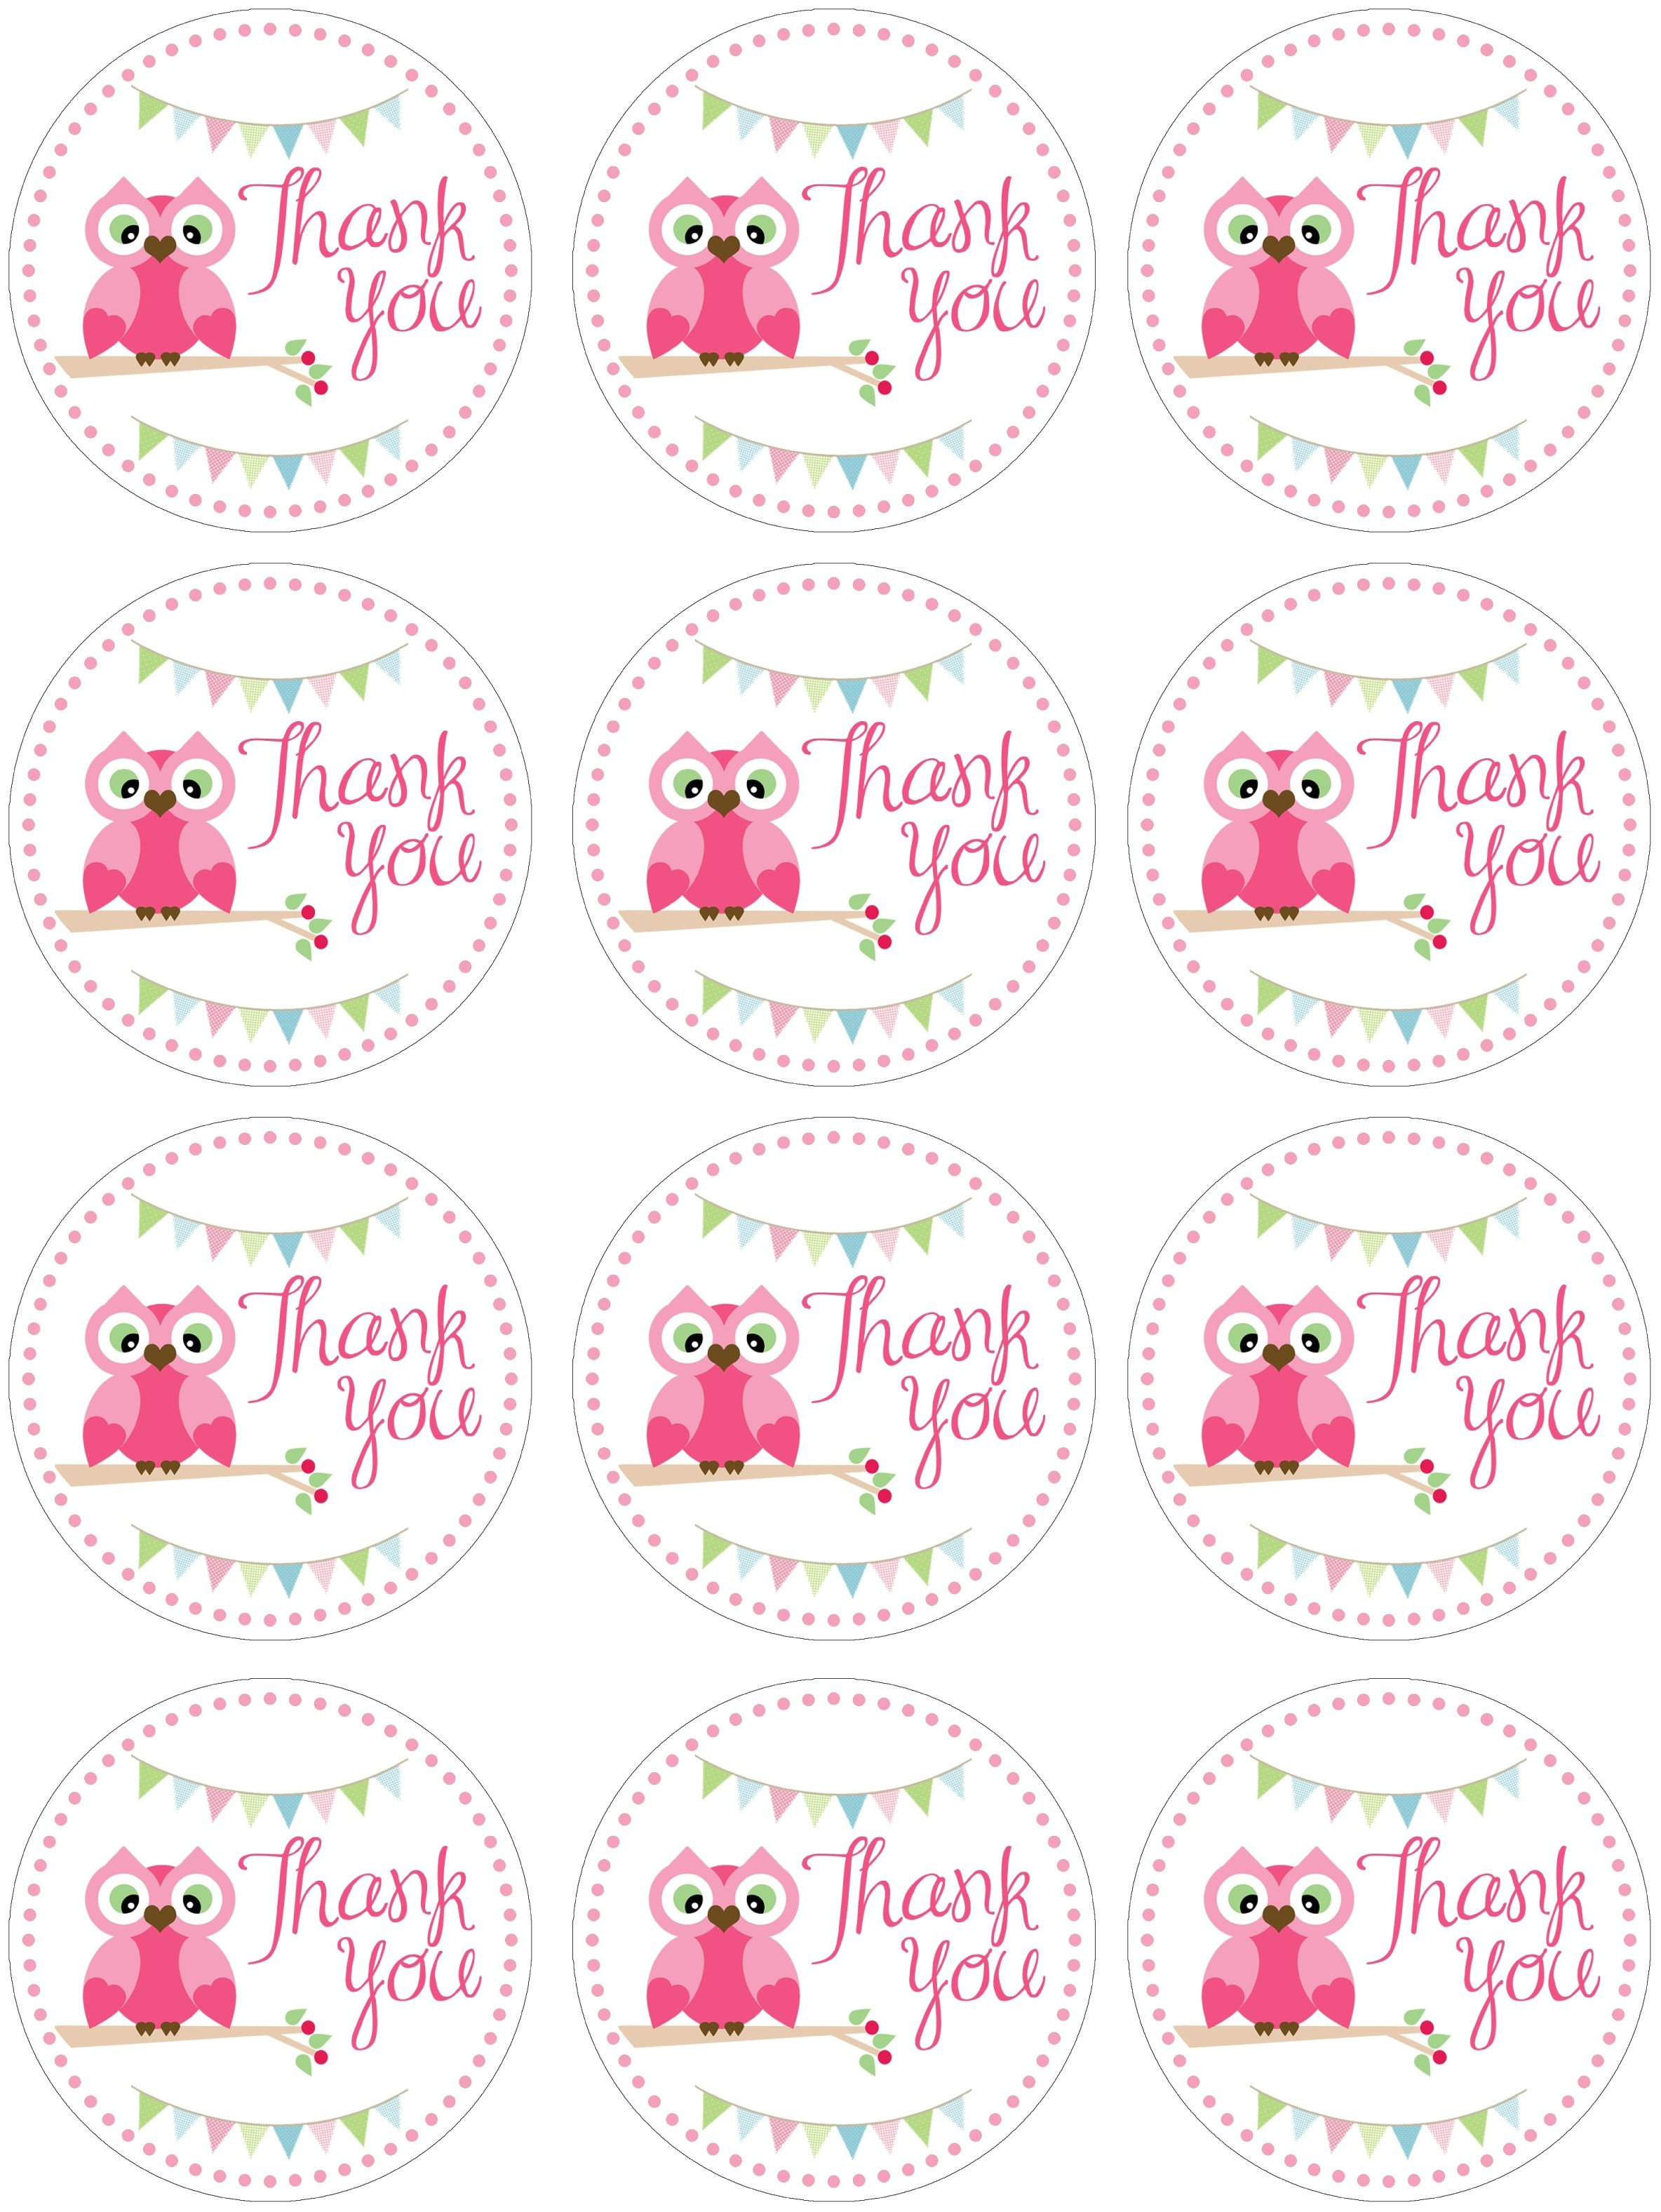 Owl Birthday Party With Free Printables | Cabochon | Pinterest - Free Printable Thank You Tags For Birthday Favors